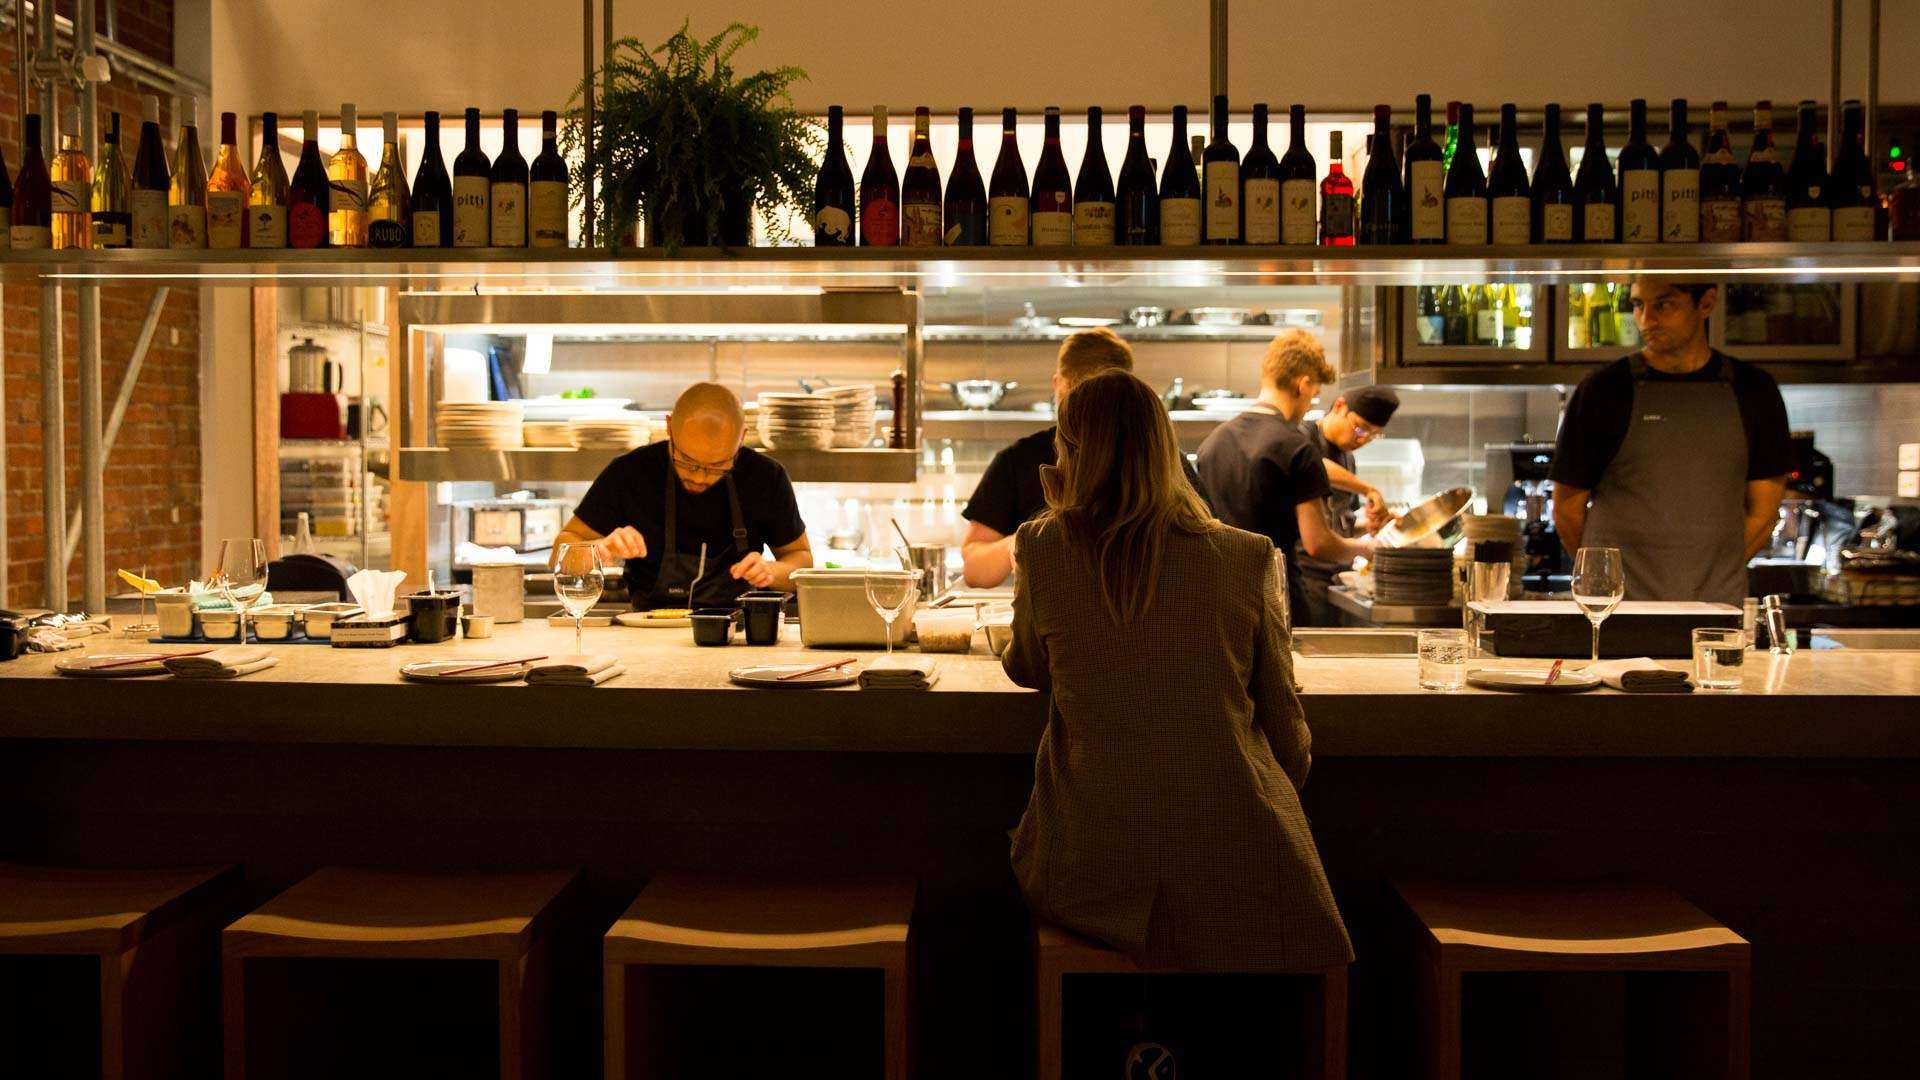 Melbourne Restaurants Where You Can Dine at the Bar